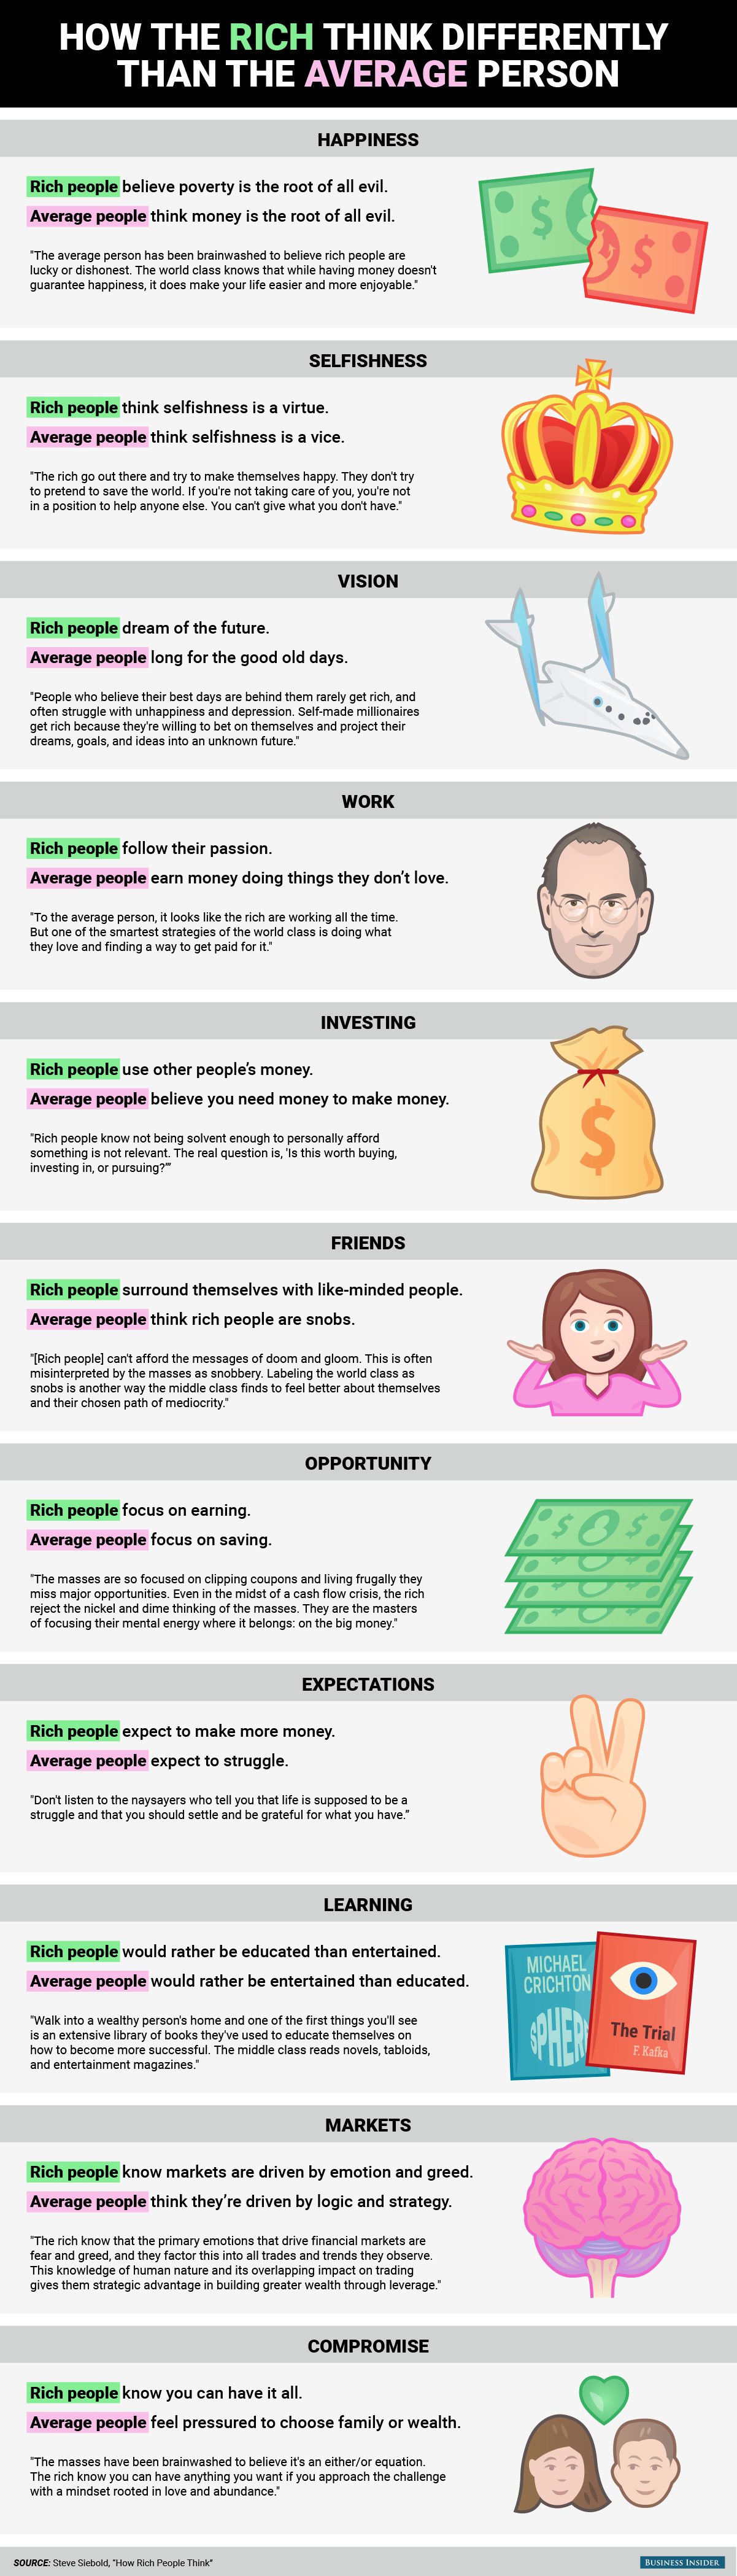 11 ways rich people think differently from the average person | my